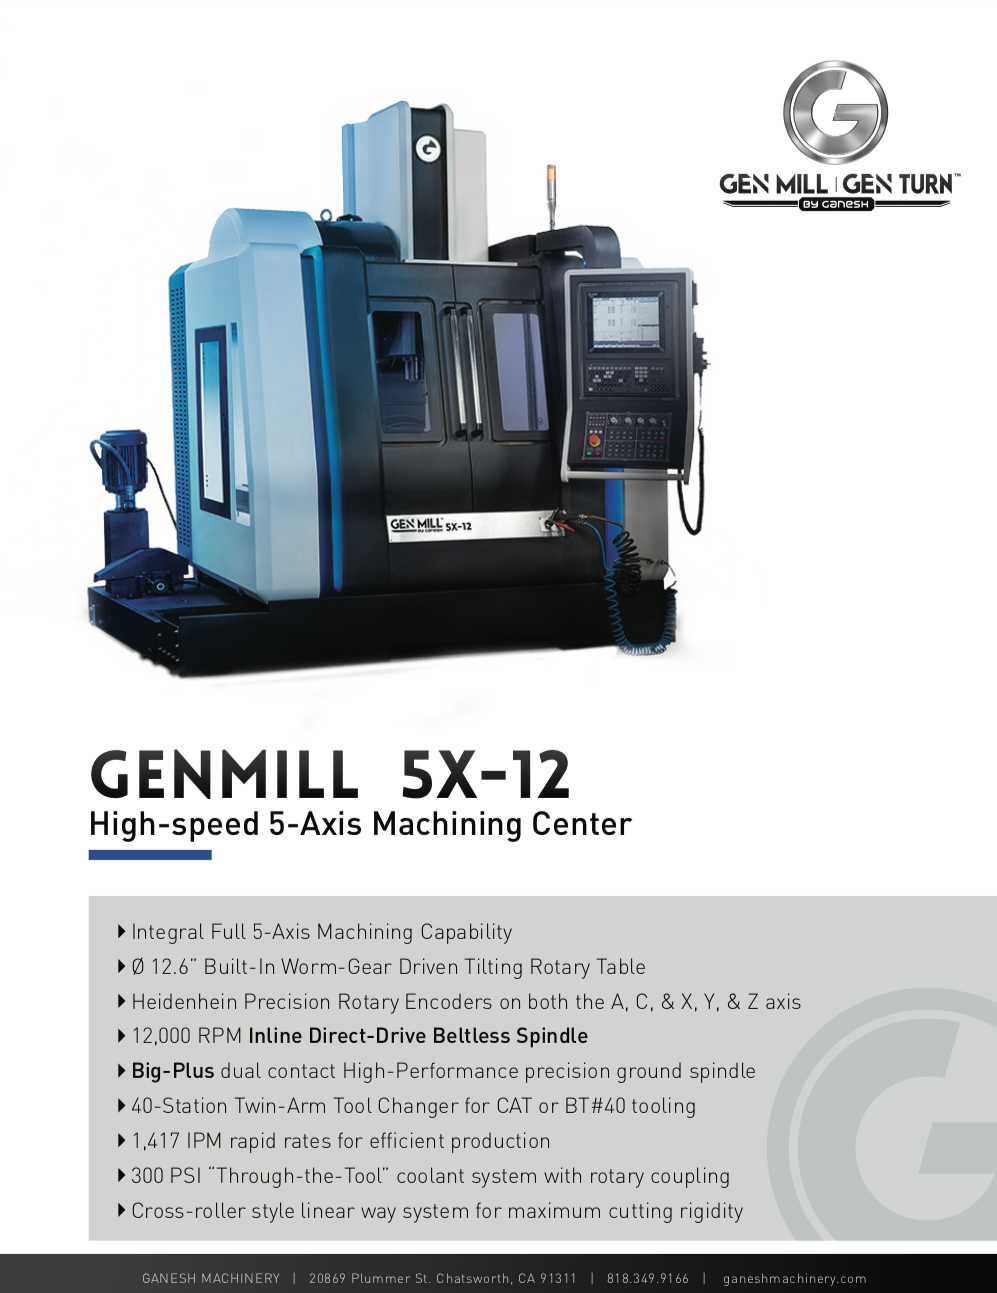 GENMILL 5X-12 Quote